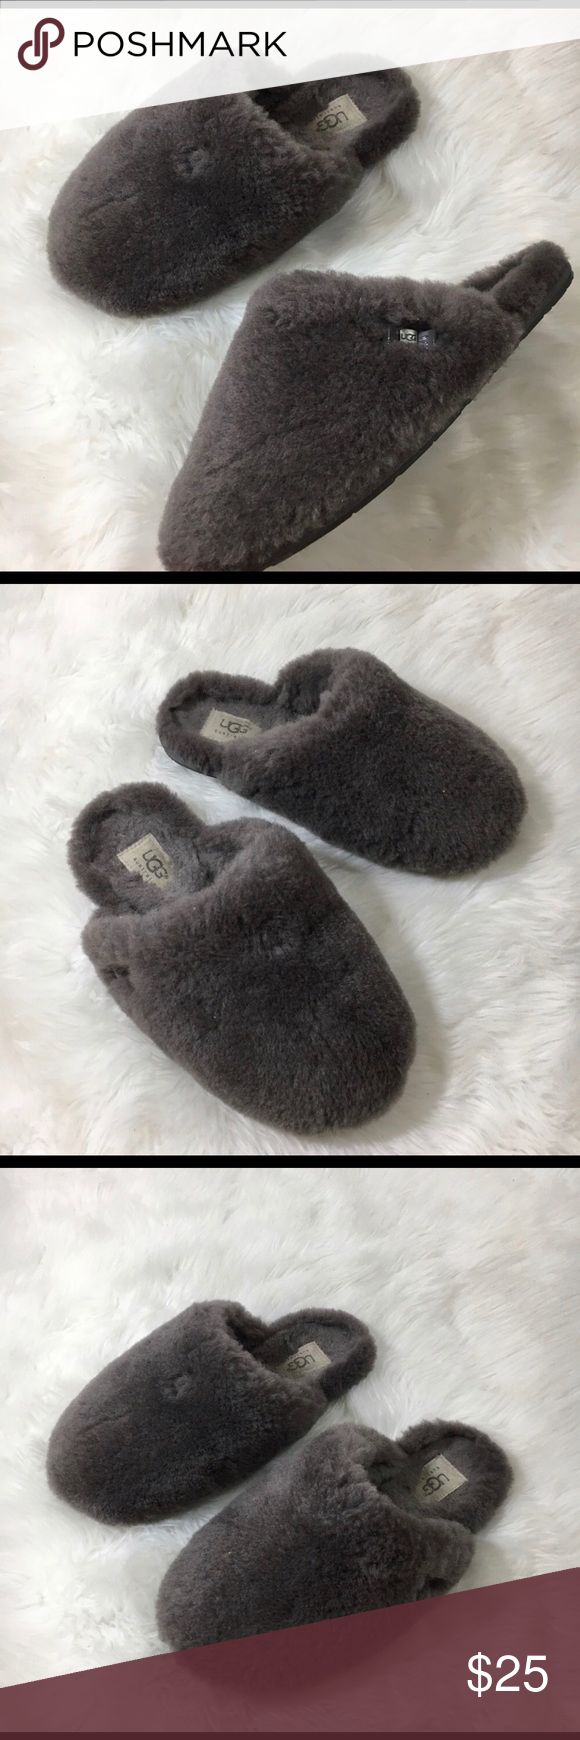 UGG sheep grey slippers Super soft and warm and fuzzy size 7 slippers great condition UGG Shoes Slippers